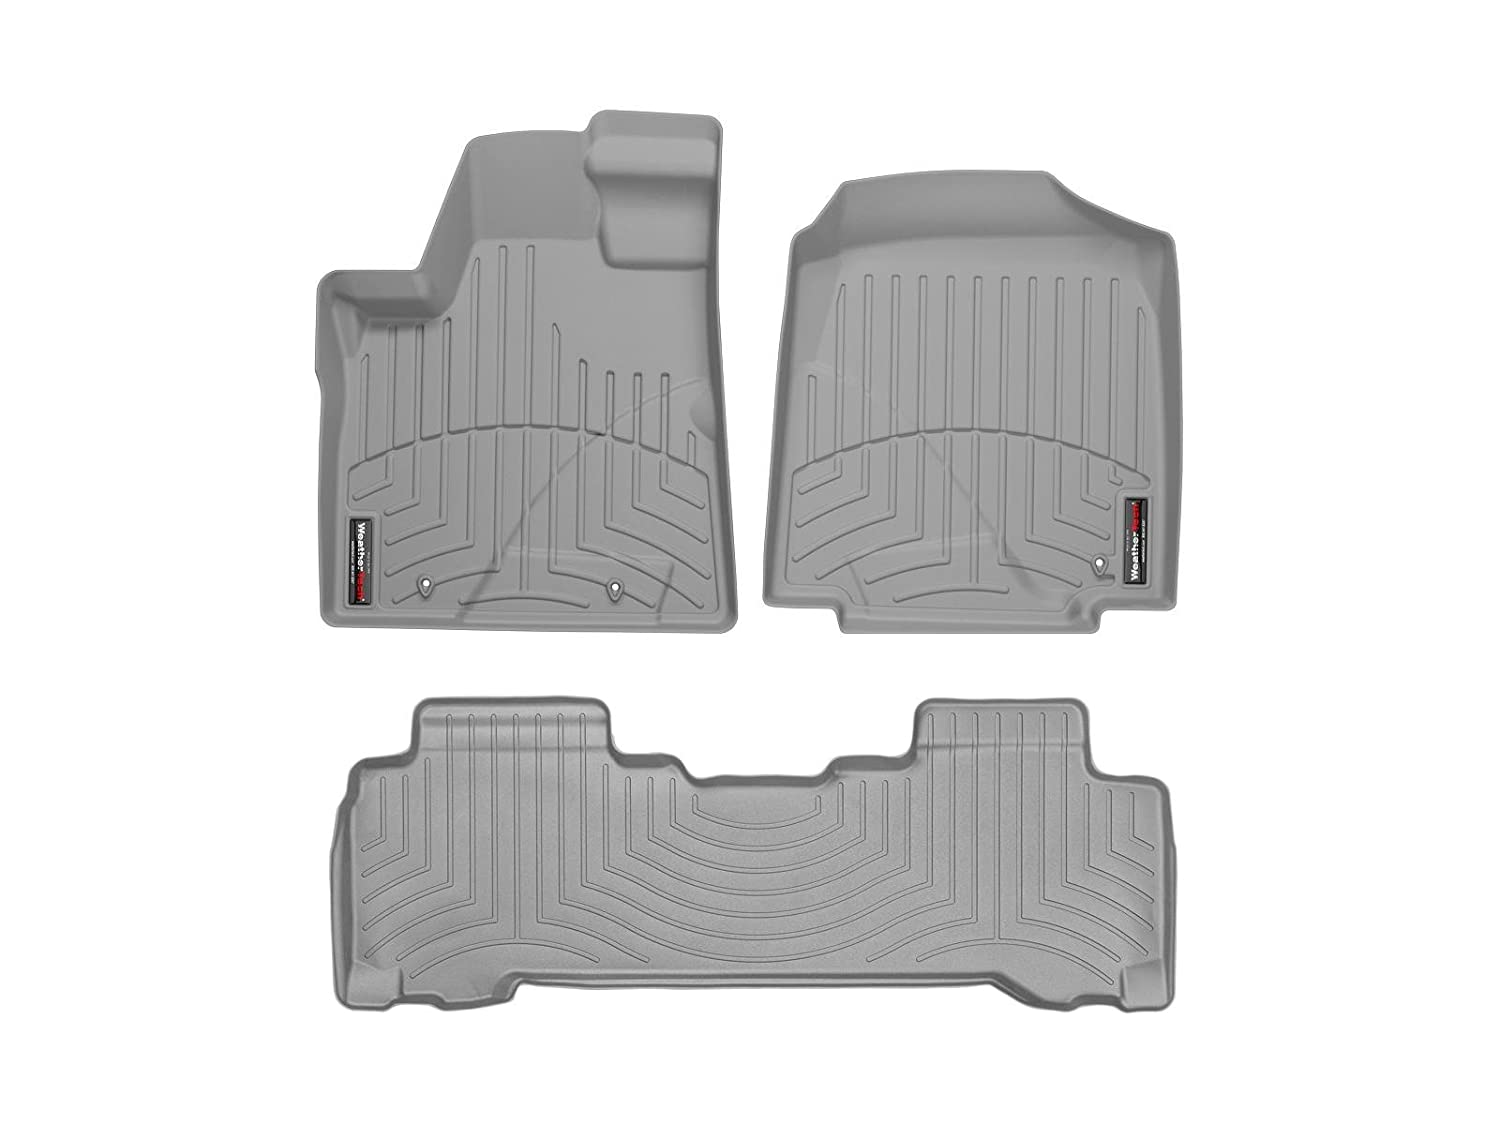 Weathertech floor mats honda pilot 2006 - Amazon Com 2006 2008 Honda Pilot Grey Weathertech Floor Liner Full Set Automotive